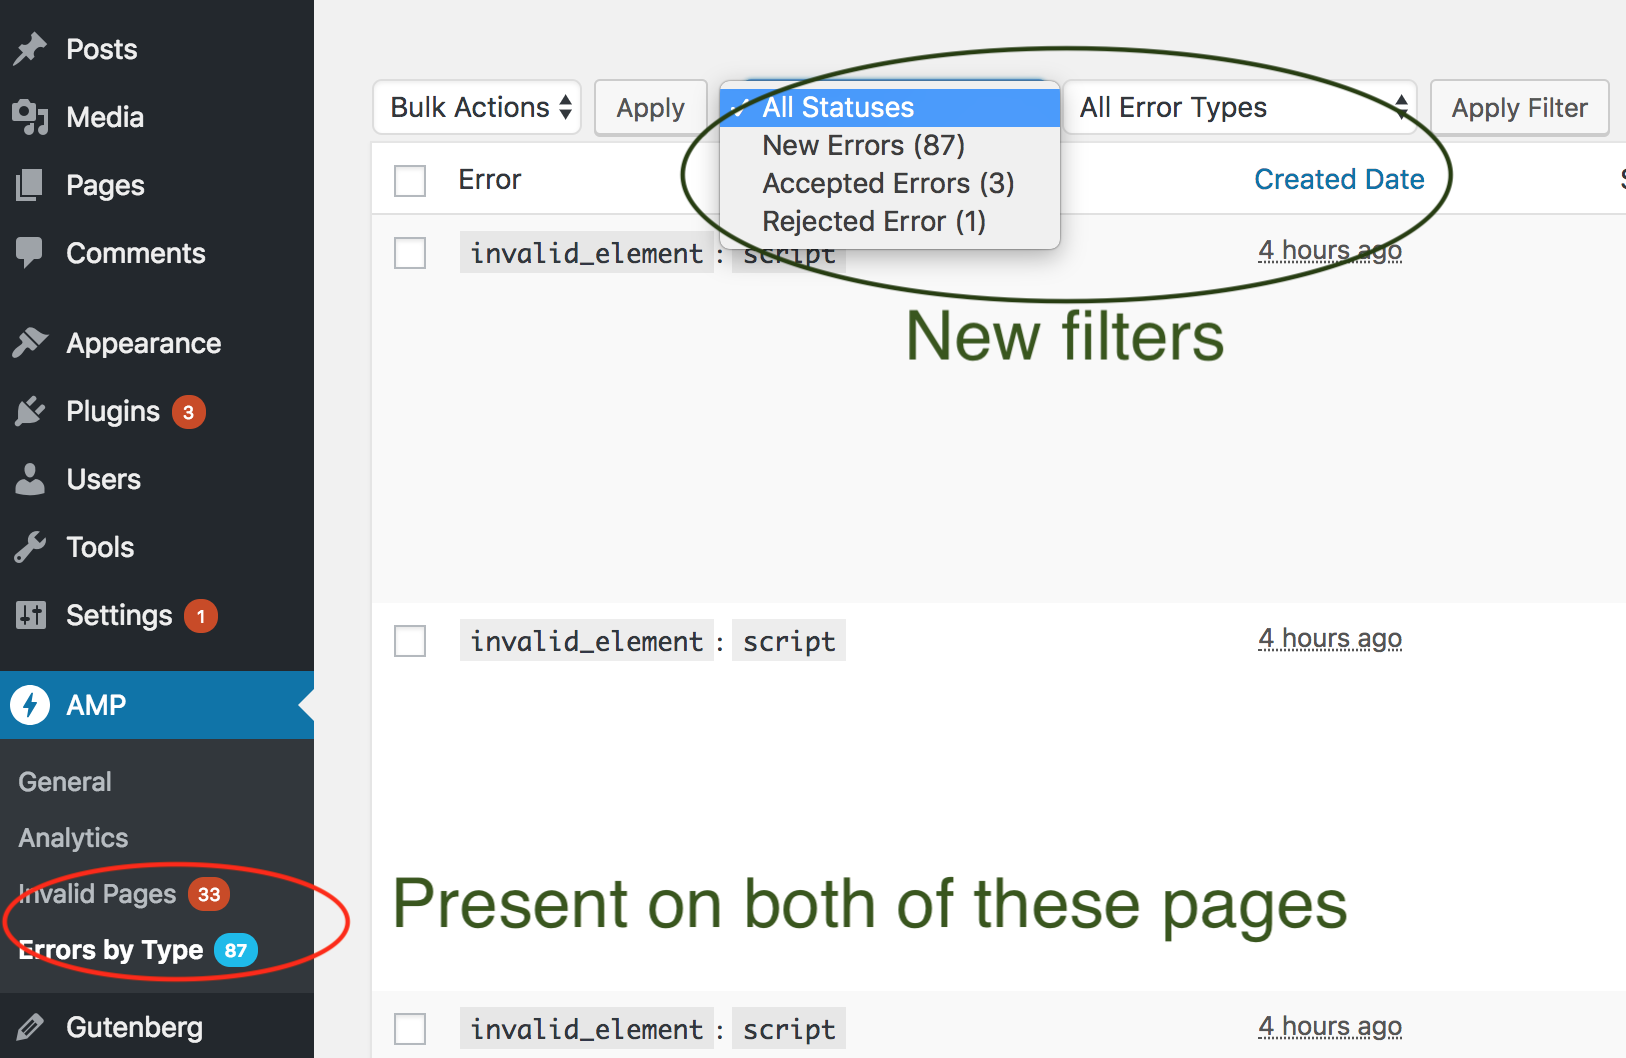 filters-on-both-pages